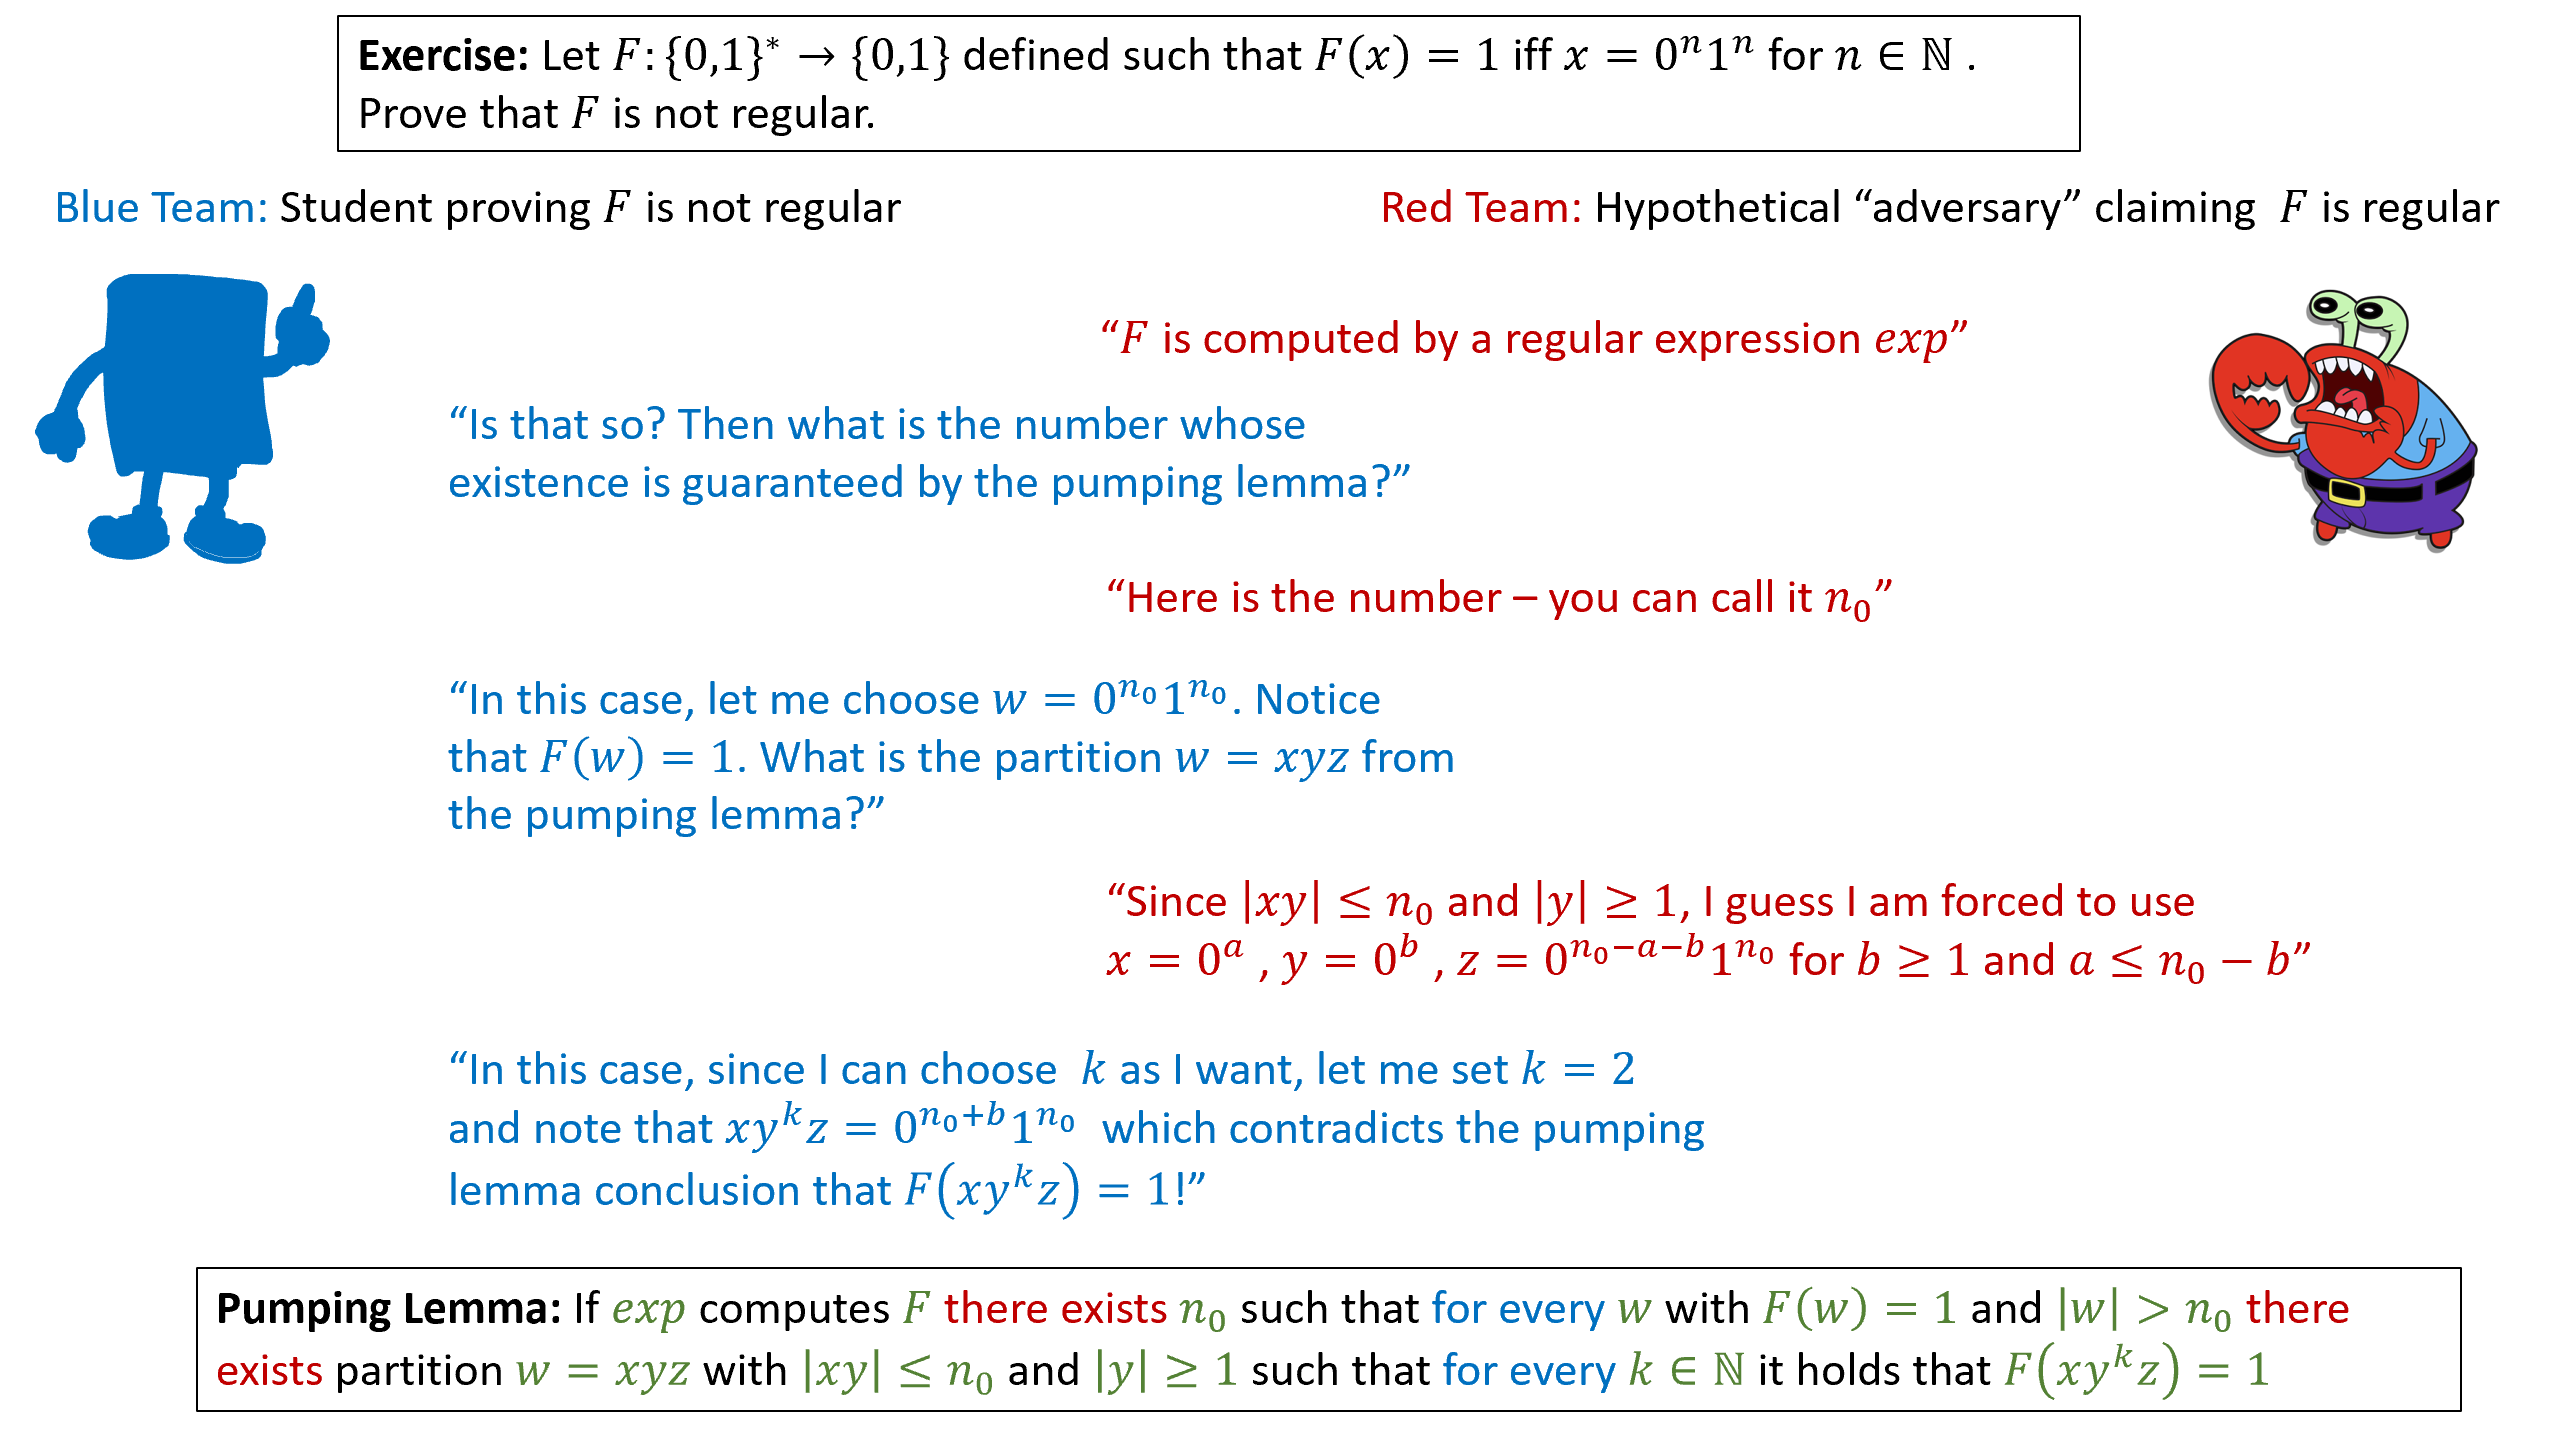 A cartoon of a proof using the pumping lemma that a function F is not regular. The pumping lemma states that if F is regular then there exists a number n_0 such that for every large enough w with F(w)=1, there exists a partition of w to w=xyz satisfying certain conditions such that for every k\in \N, F(xy^kz)=1. You can imagine a pumping-lemma based proof as a game between you and the adversary. Every there exists quantifier corresponds to an object you are free to choose on your own (and base your choice on previously chosen objects). Every for every quantifier corresponds to an object the adversary can choose arbitrarily (and again based on prior choices) as long as it satisfies the conditions. A valid proof corresponds to a strategy by which no matter what the adversary does, you can win the game by obtaining a contradiction which would be a choice of k that would result in F(xy^ky)=0, hence violating the conclusion of the pumping lemma.